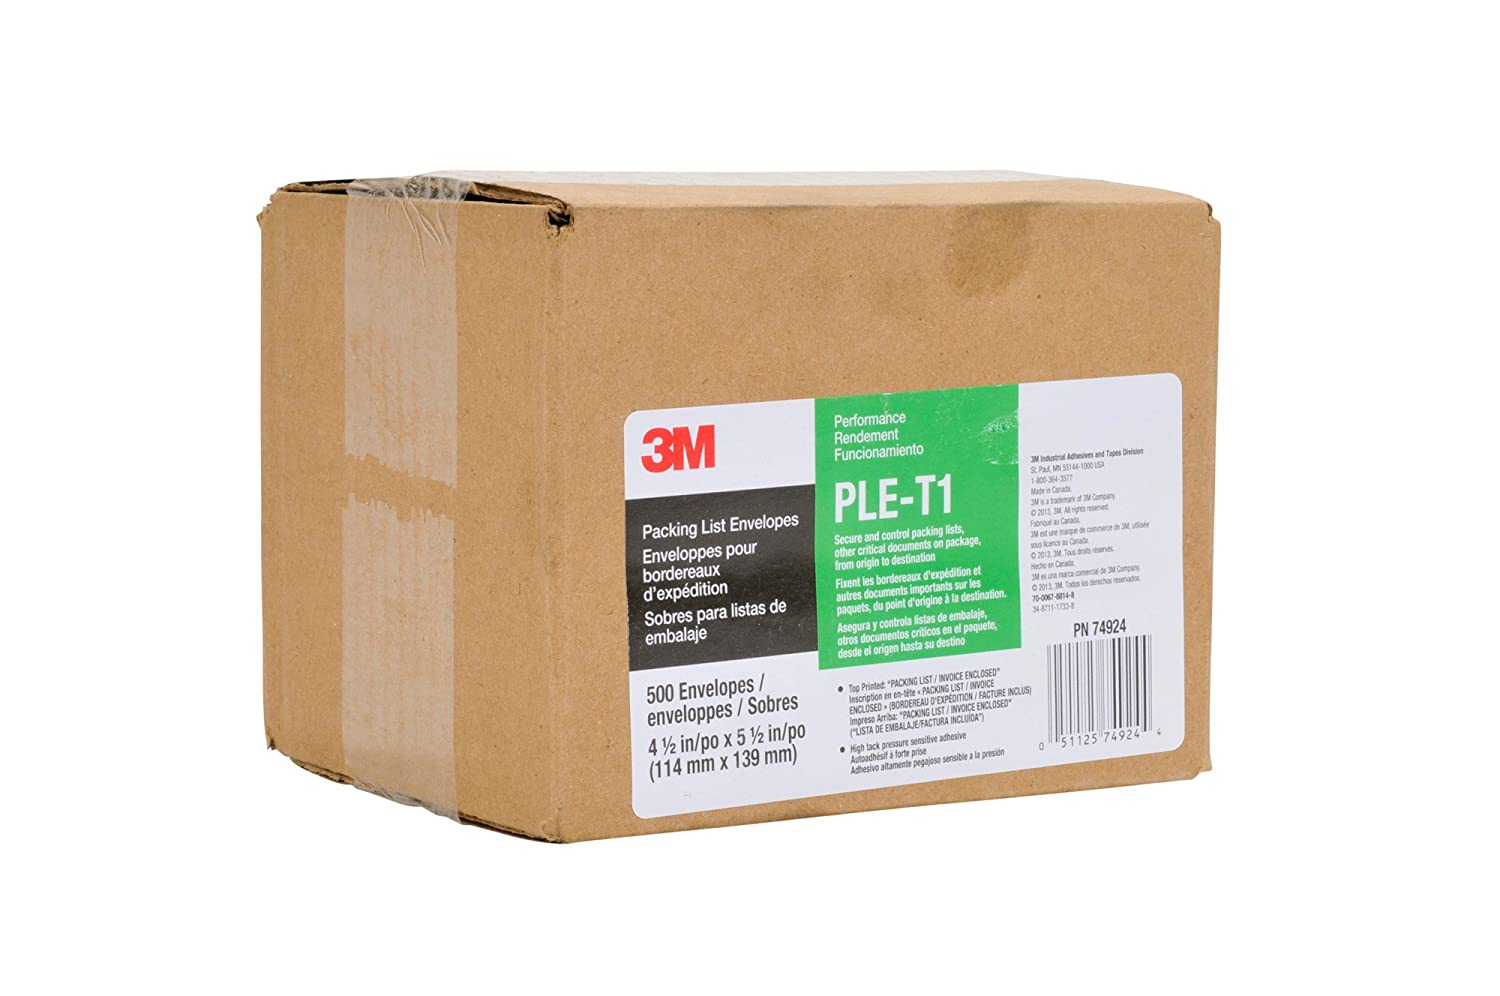 com m top print packing list envelope ple t in x com 3m top print packing list envelope ple t1 4 1 2 in x 5 1 2 in box of 100 packing slip pouch office products